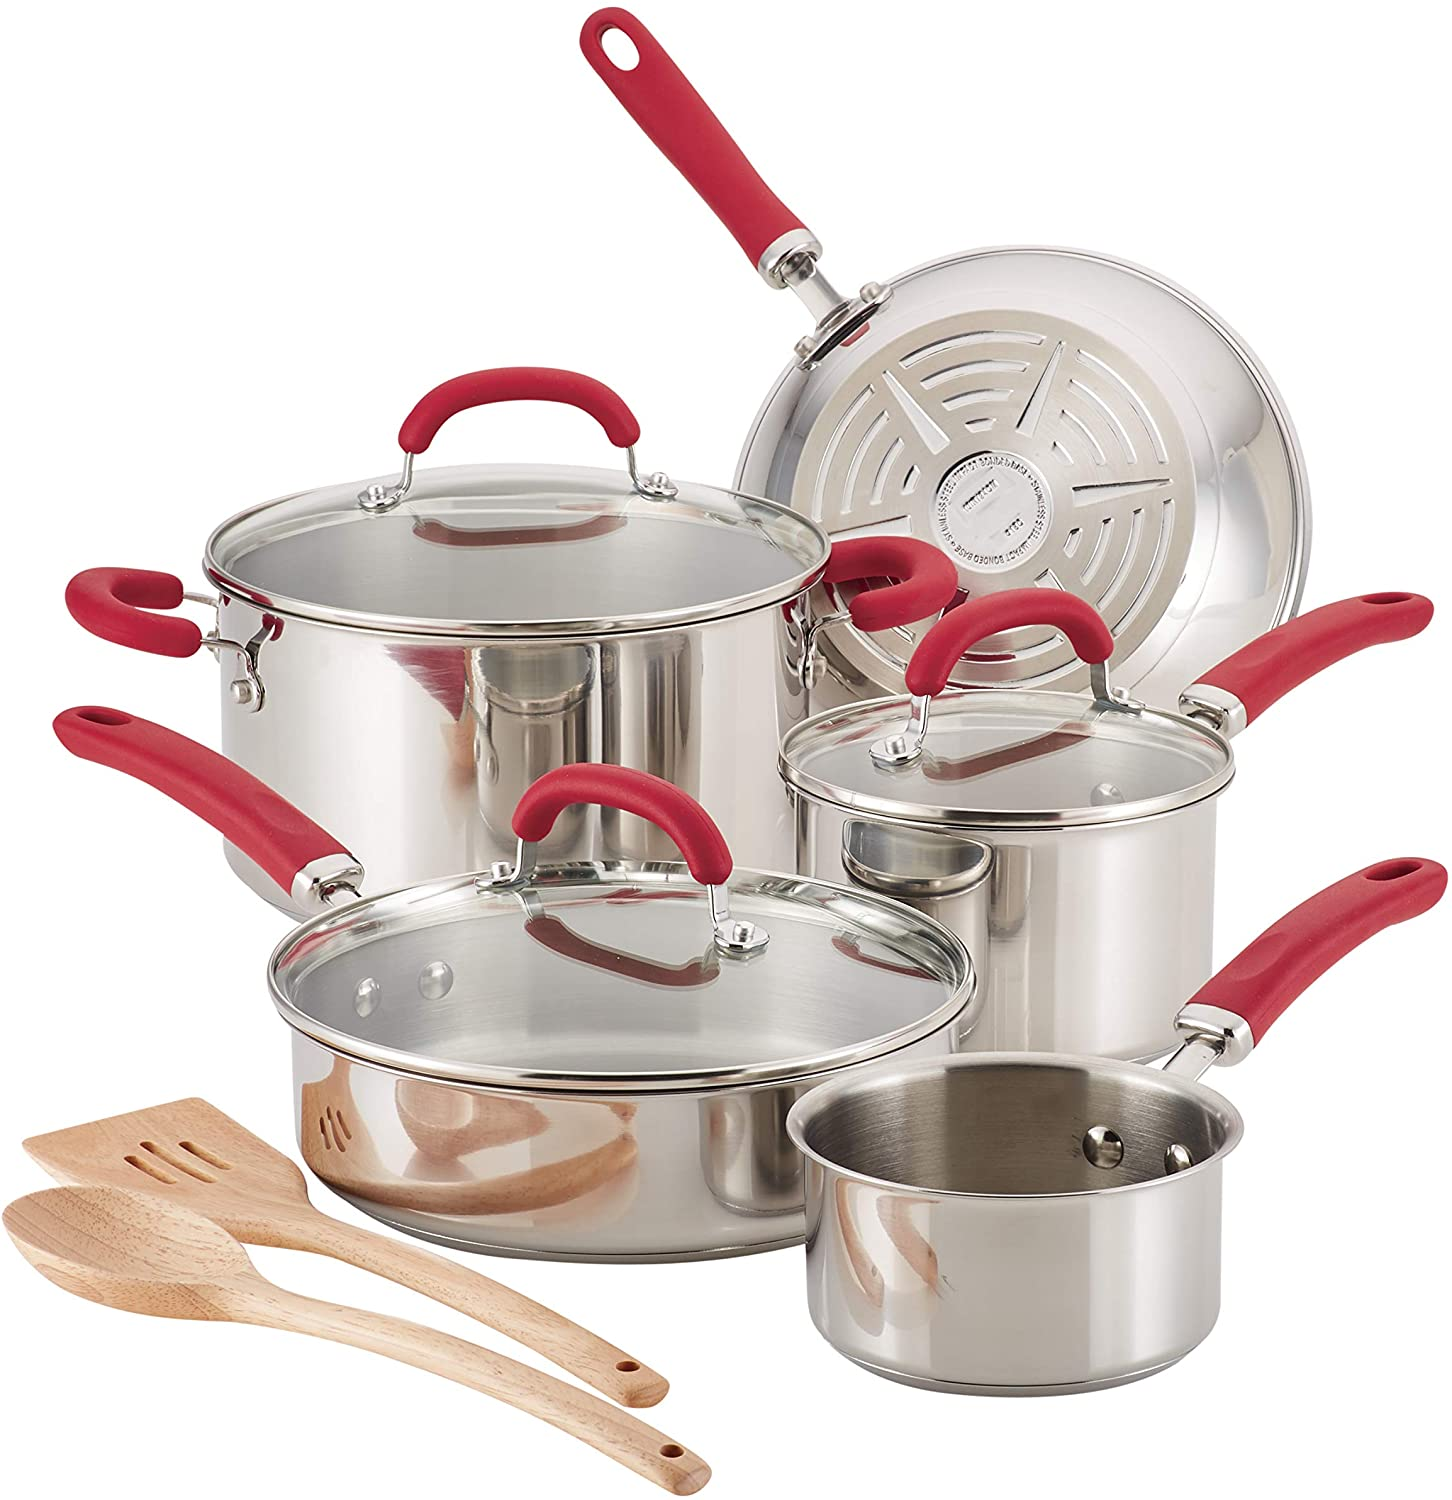 Best Cookware Sets of 2020